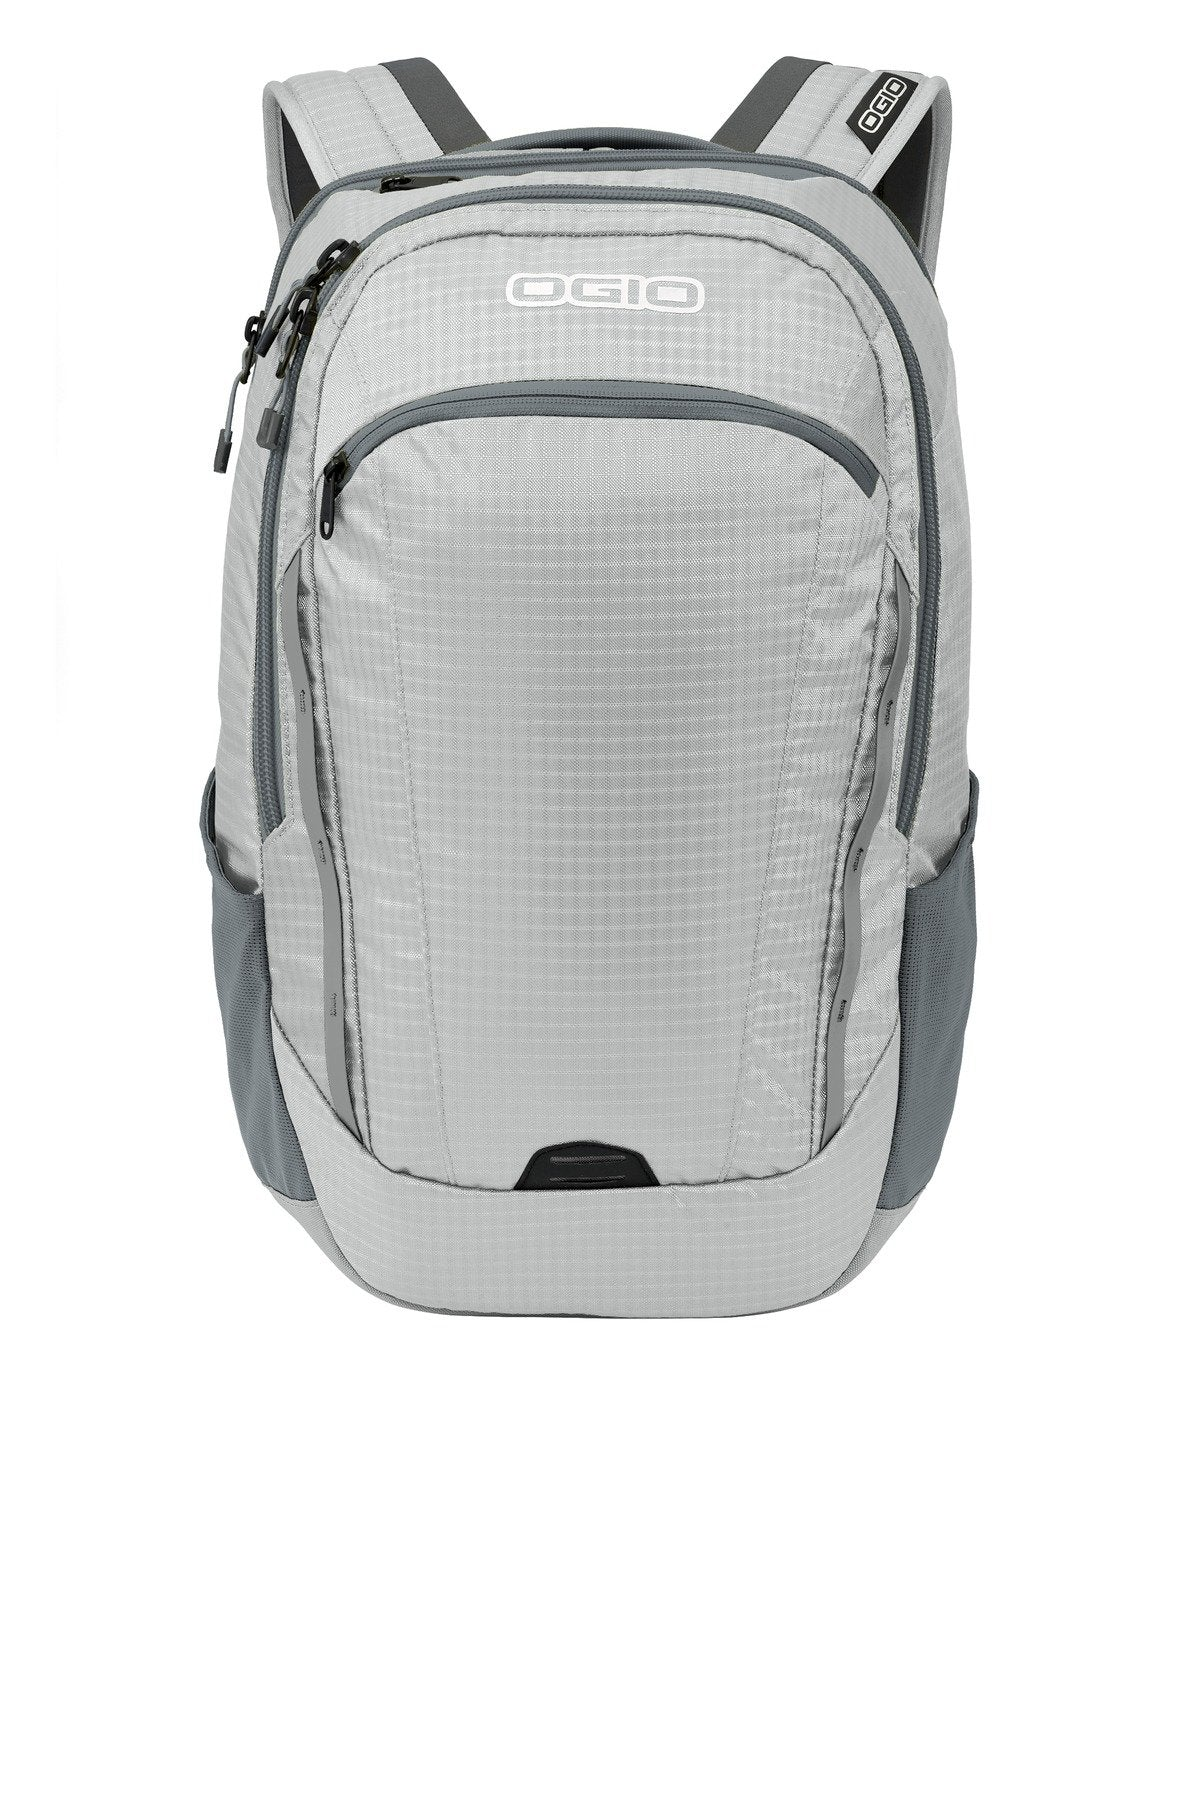 Harbor Grey/ Silver - OGIO 411094